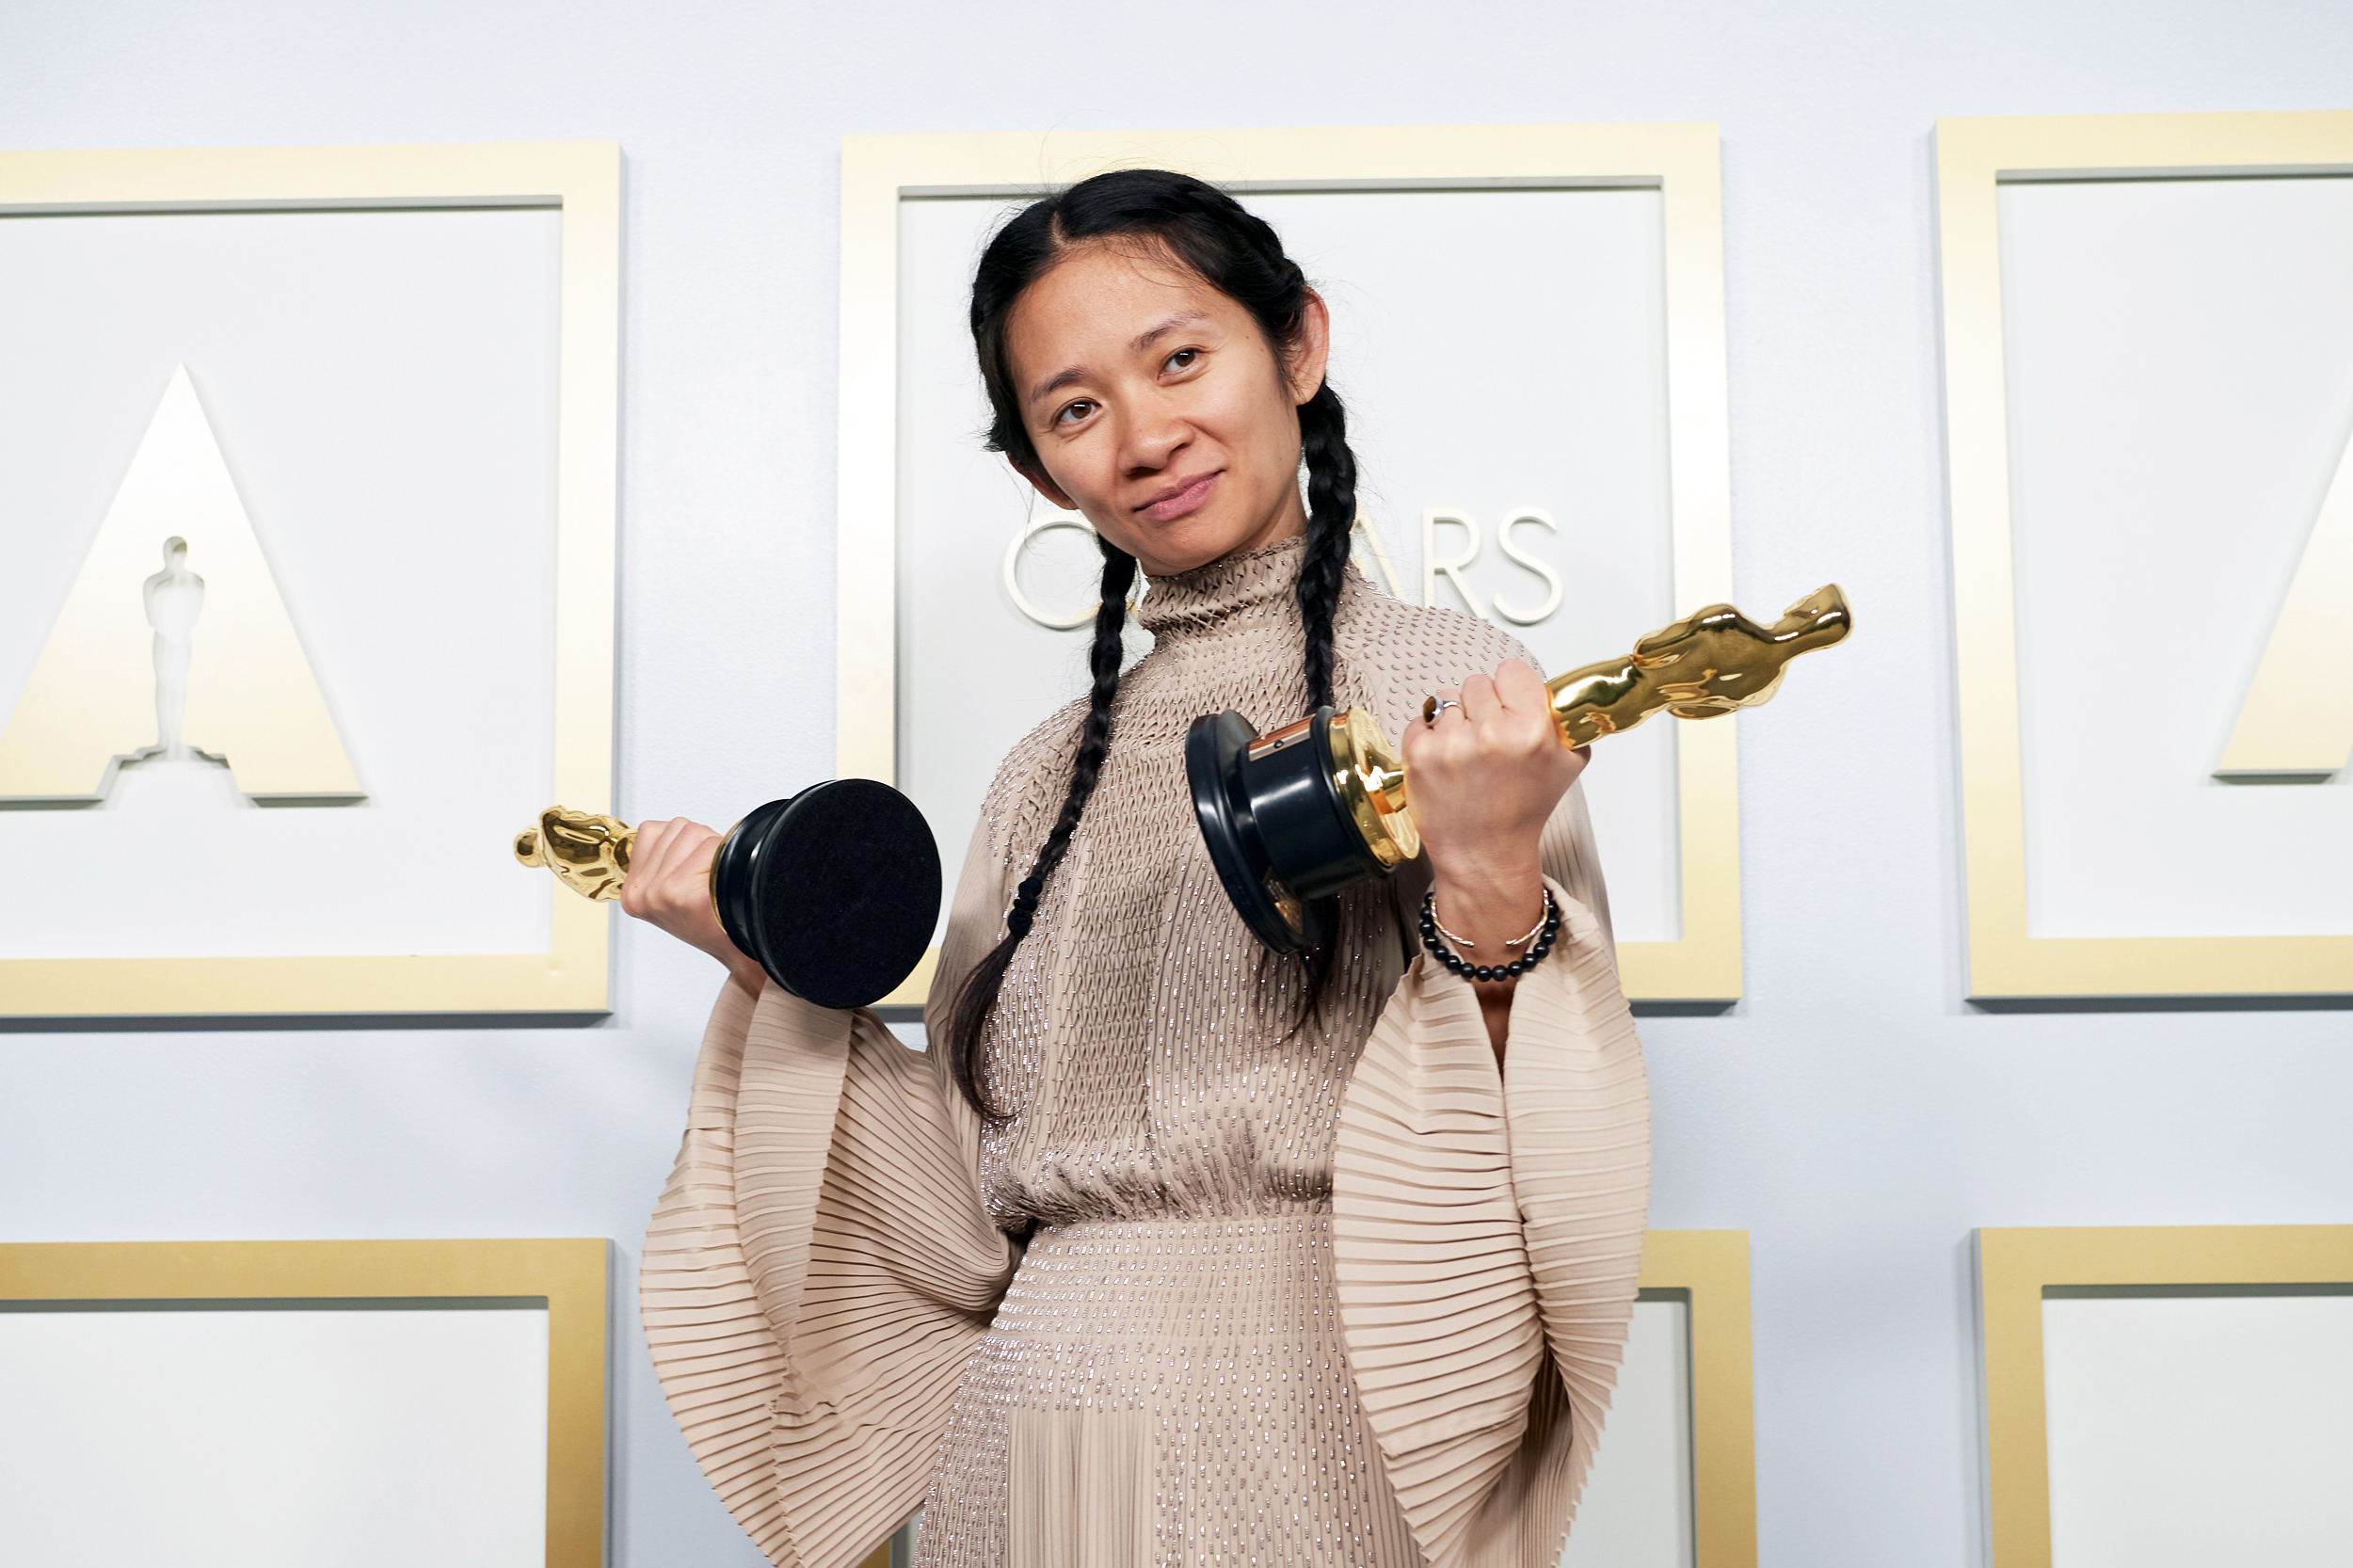 A medium-skinned woman of Asian descent holds two Oscar award statues in either hand, both pointed out to either side. She smiles slightly, her black hair is in two french braids, and she wears an earth-toned dress with fan sleeves.